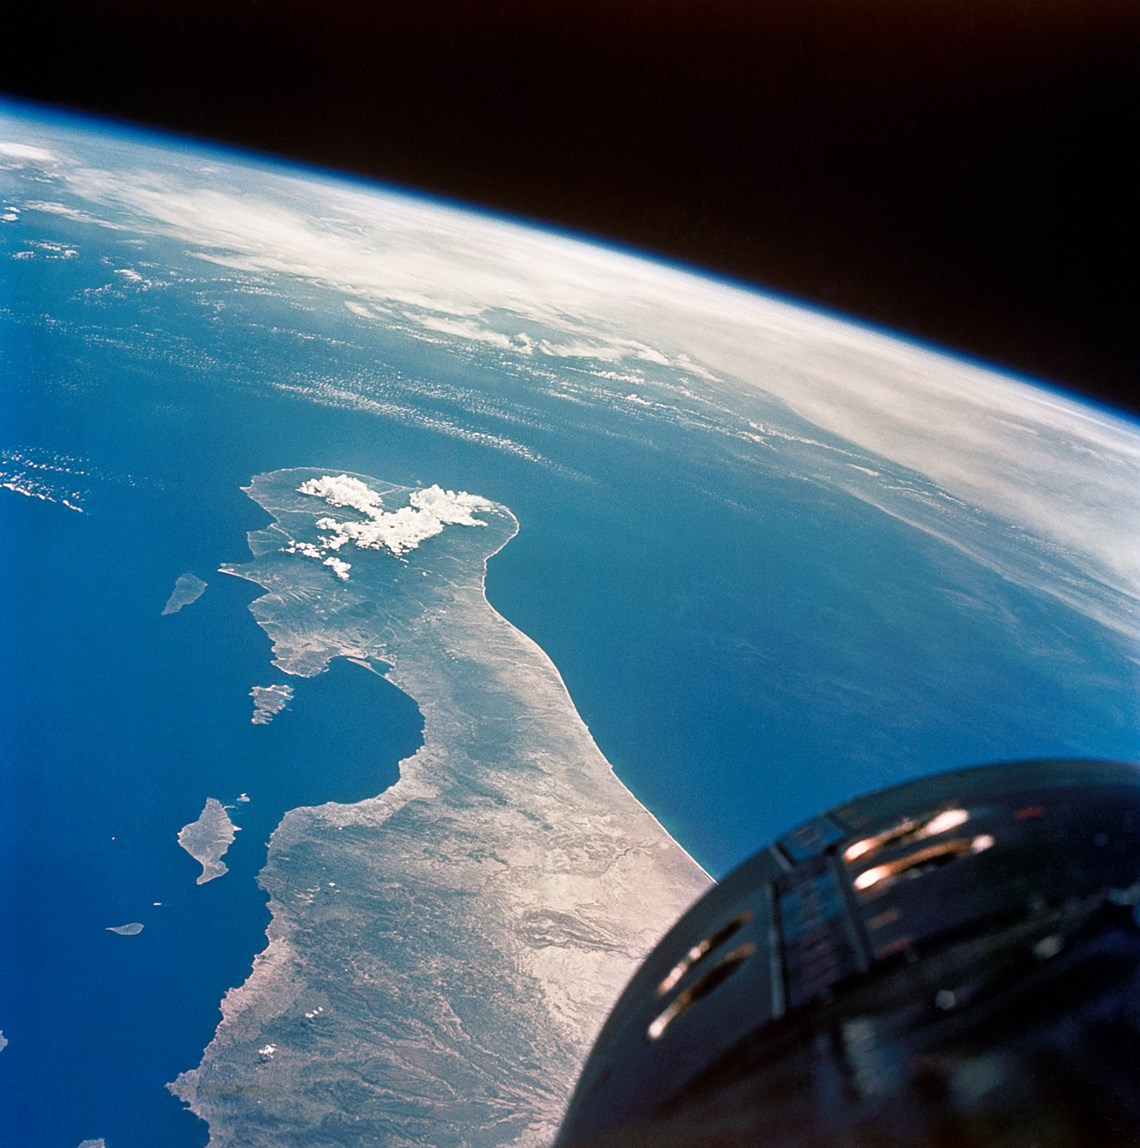 View of the Earth past the nose of Gemini V -NASA